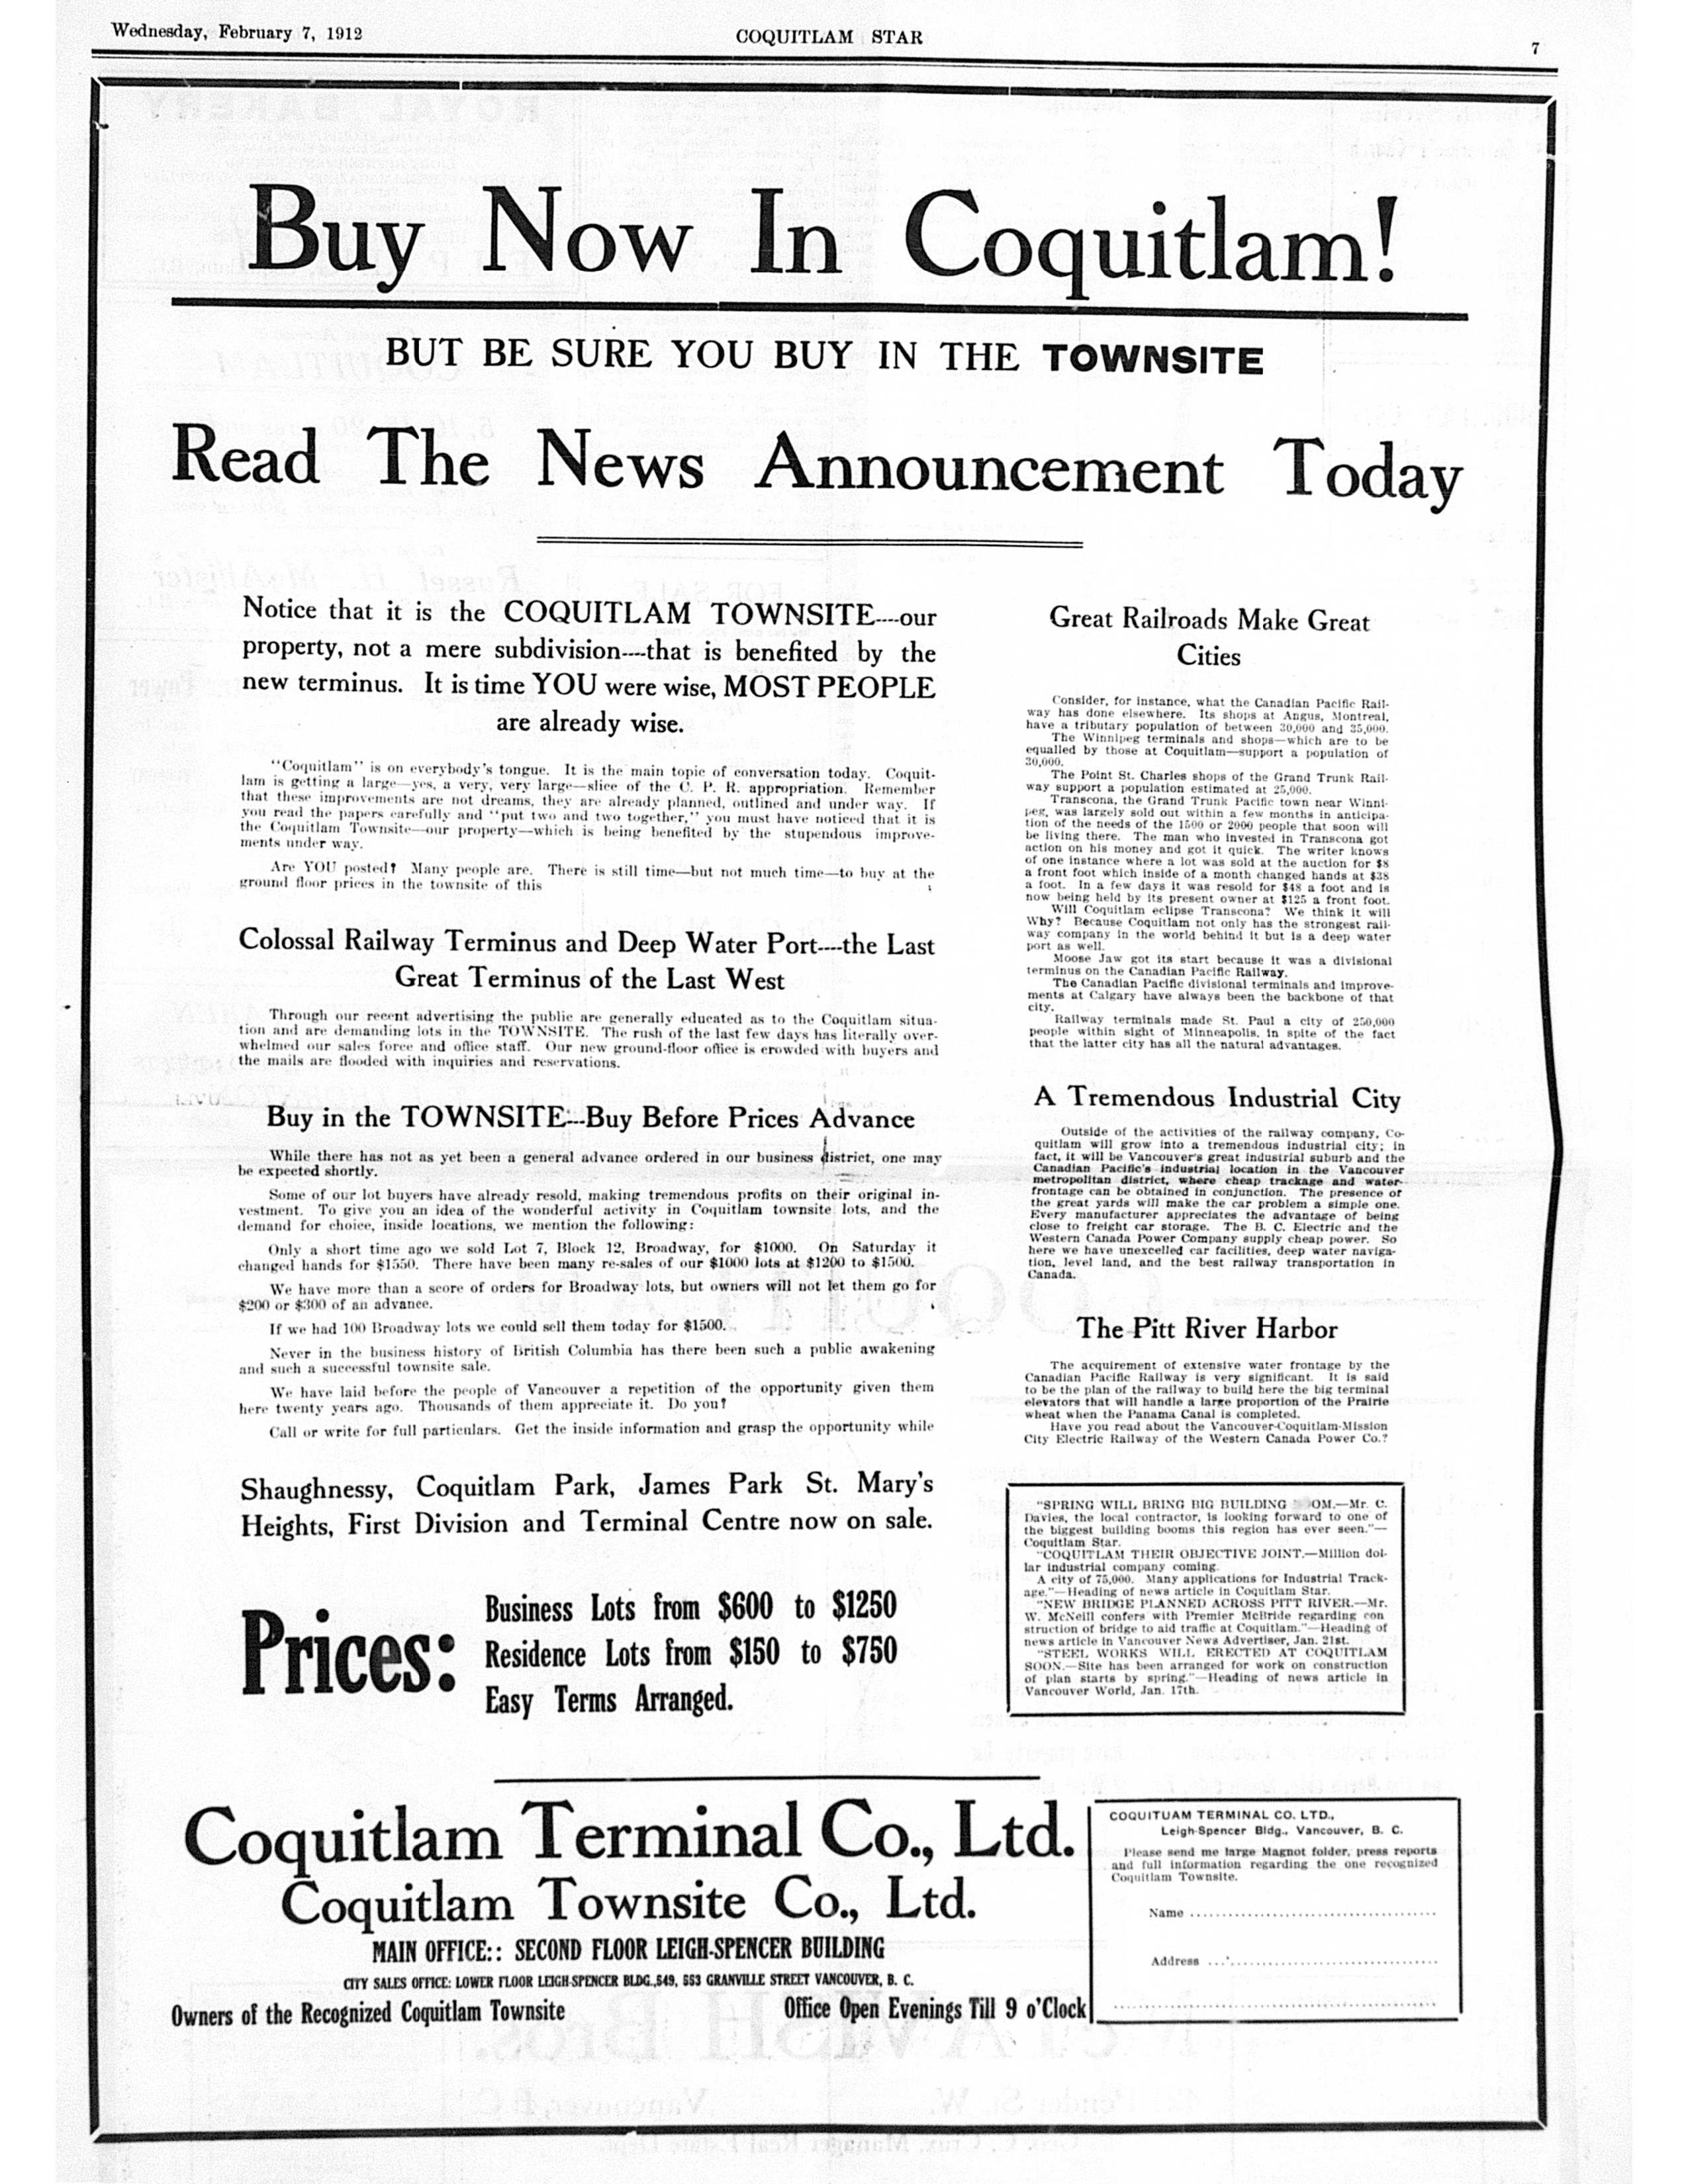 Advertisement, Coquitlam Star, 1913 (JPG) Opens in new window